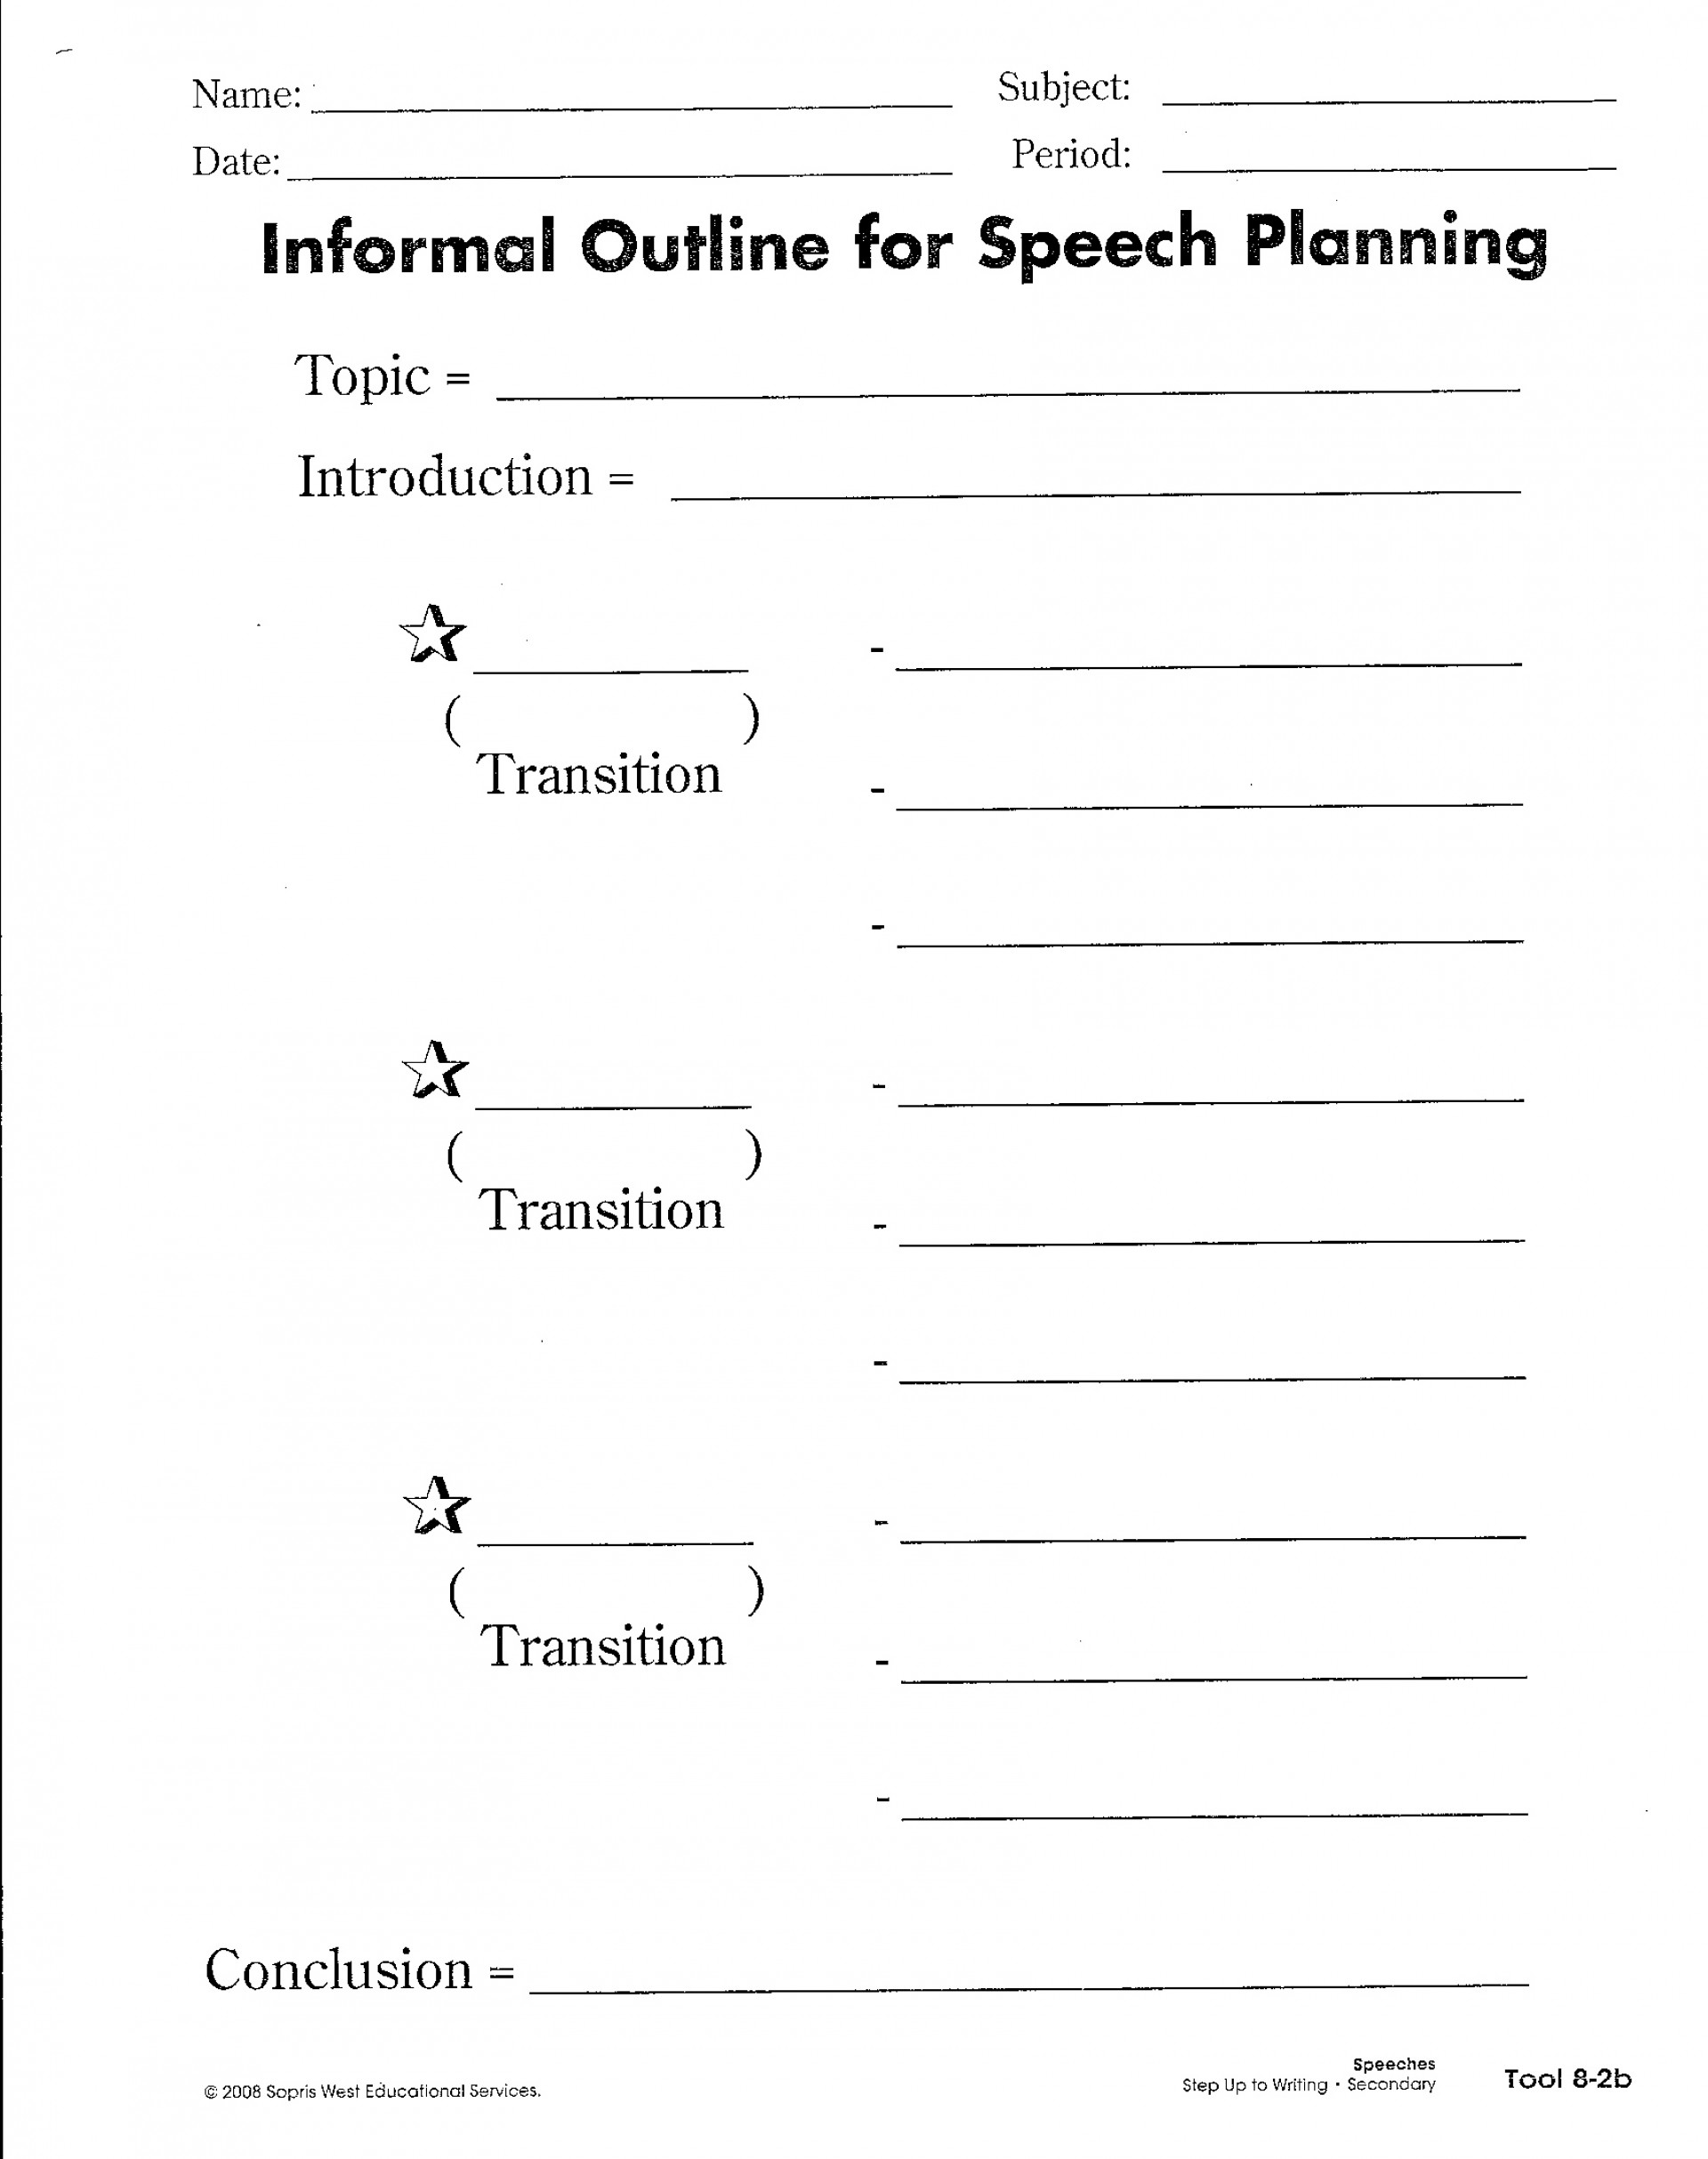 019 Research Paper College Outline Apa Format Suw Planning Your Speech With An Informal Impressive 1920